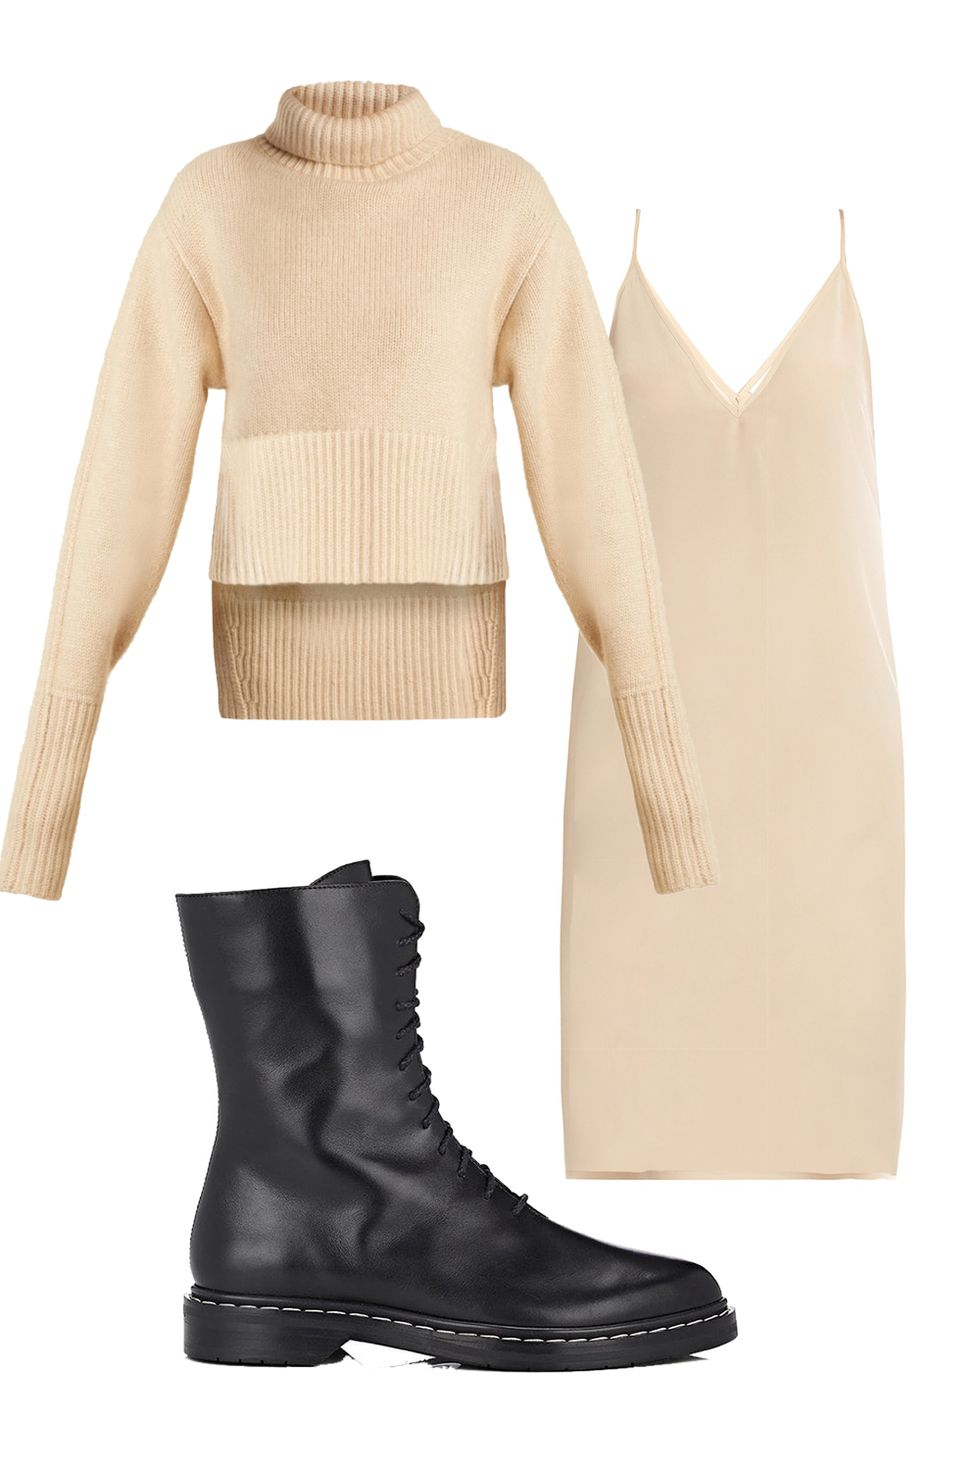 white-dress-slip-white-sweater-turtleneck-black-shoe-booties-fall-winter-thanksgiving-outfits-holidays-lunch.jpg